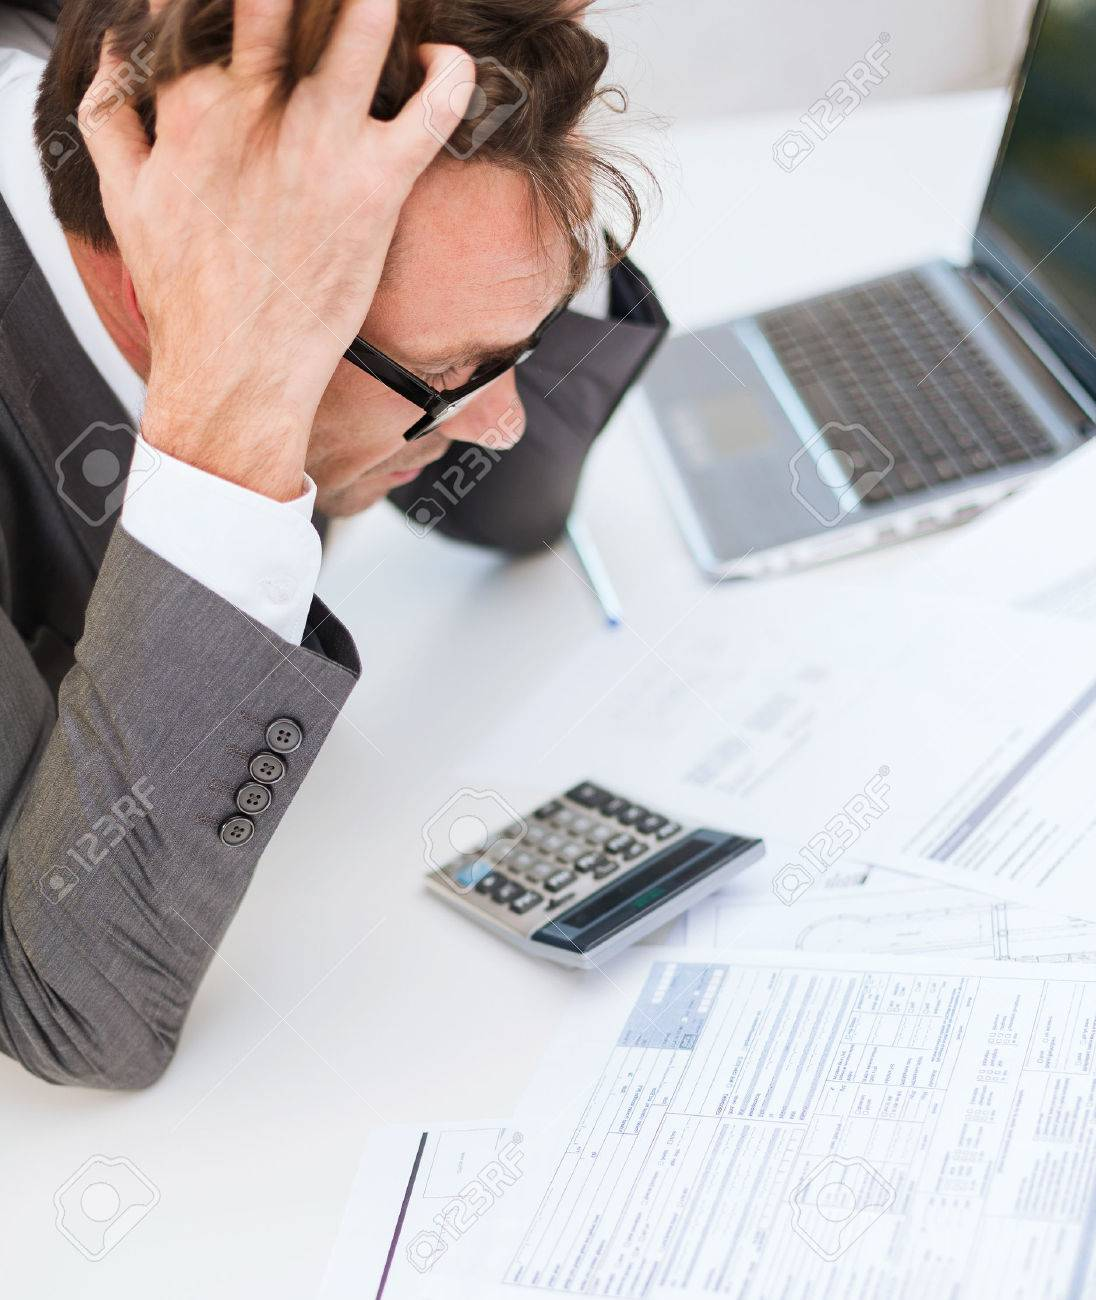 tax business and stress concept stressed businessman stock photo tax business and stress concept stressed businessman papres laptop and calculator